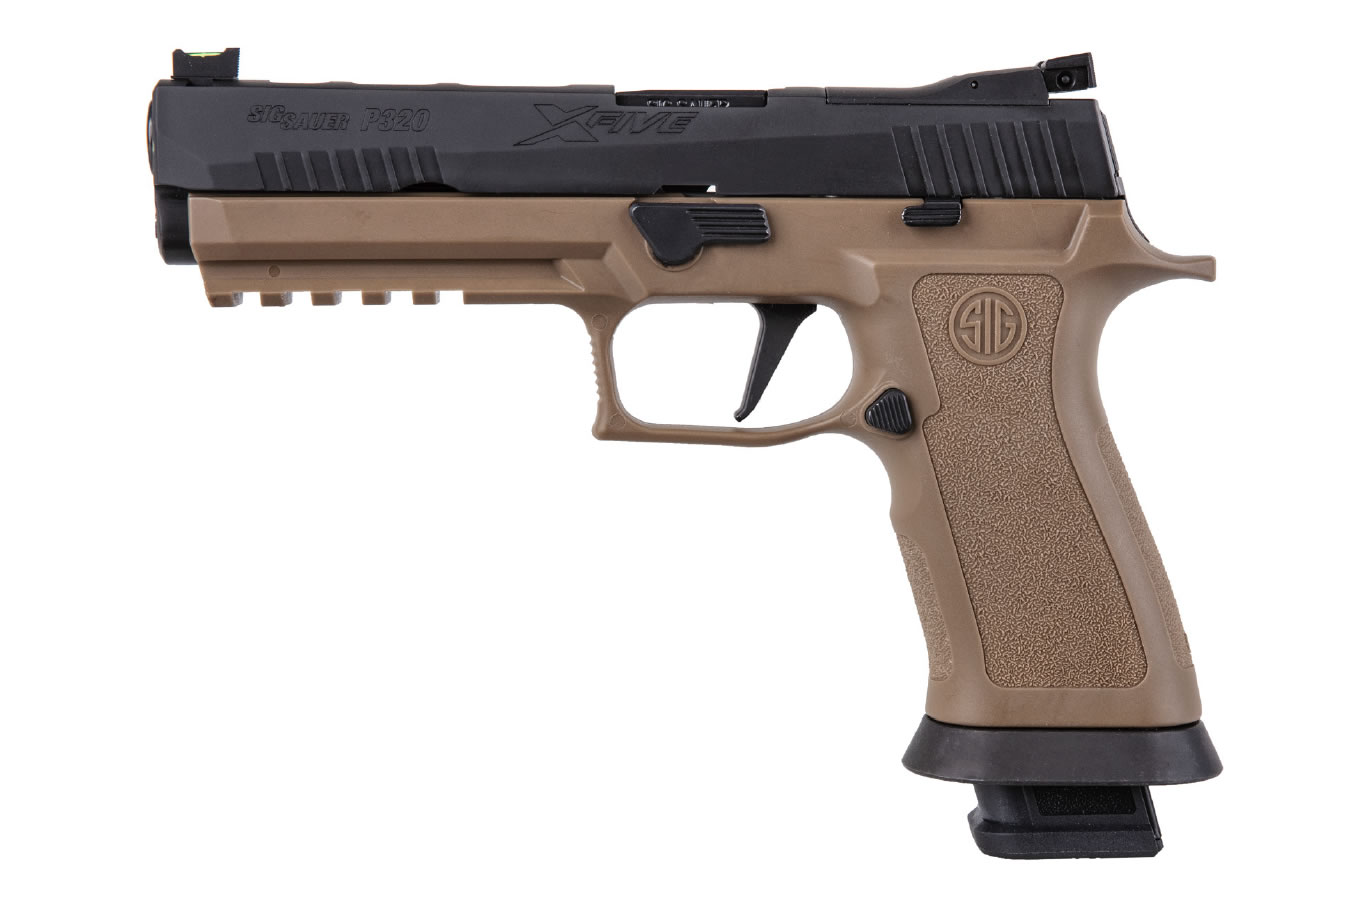 P320 X-FIVE 9MM REVERSE TWO-TONE COYOTE